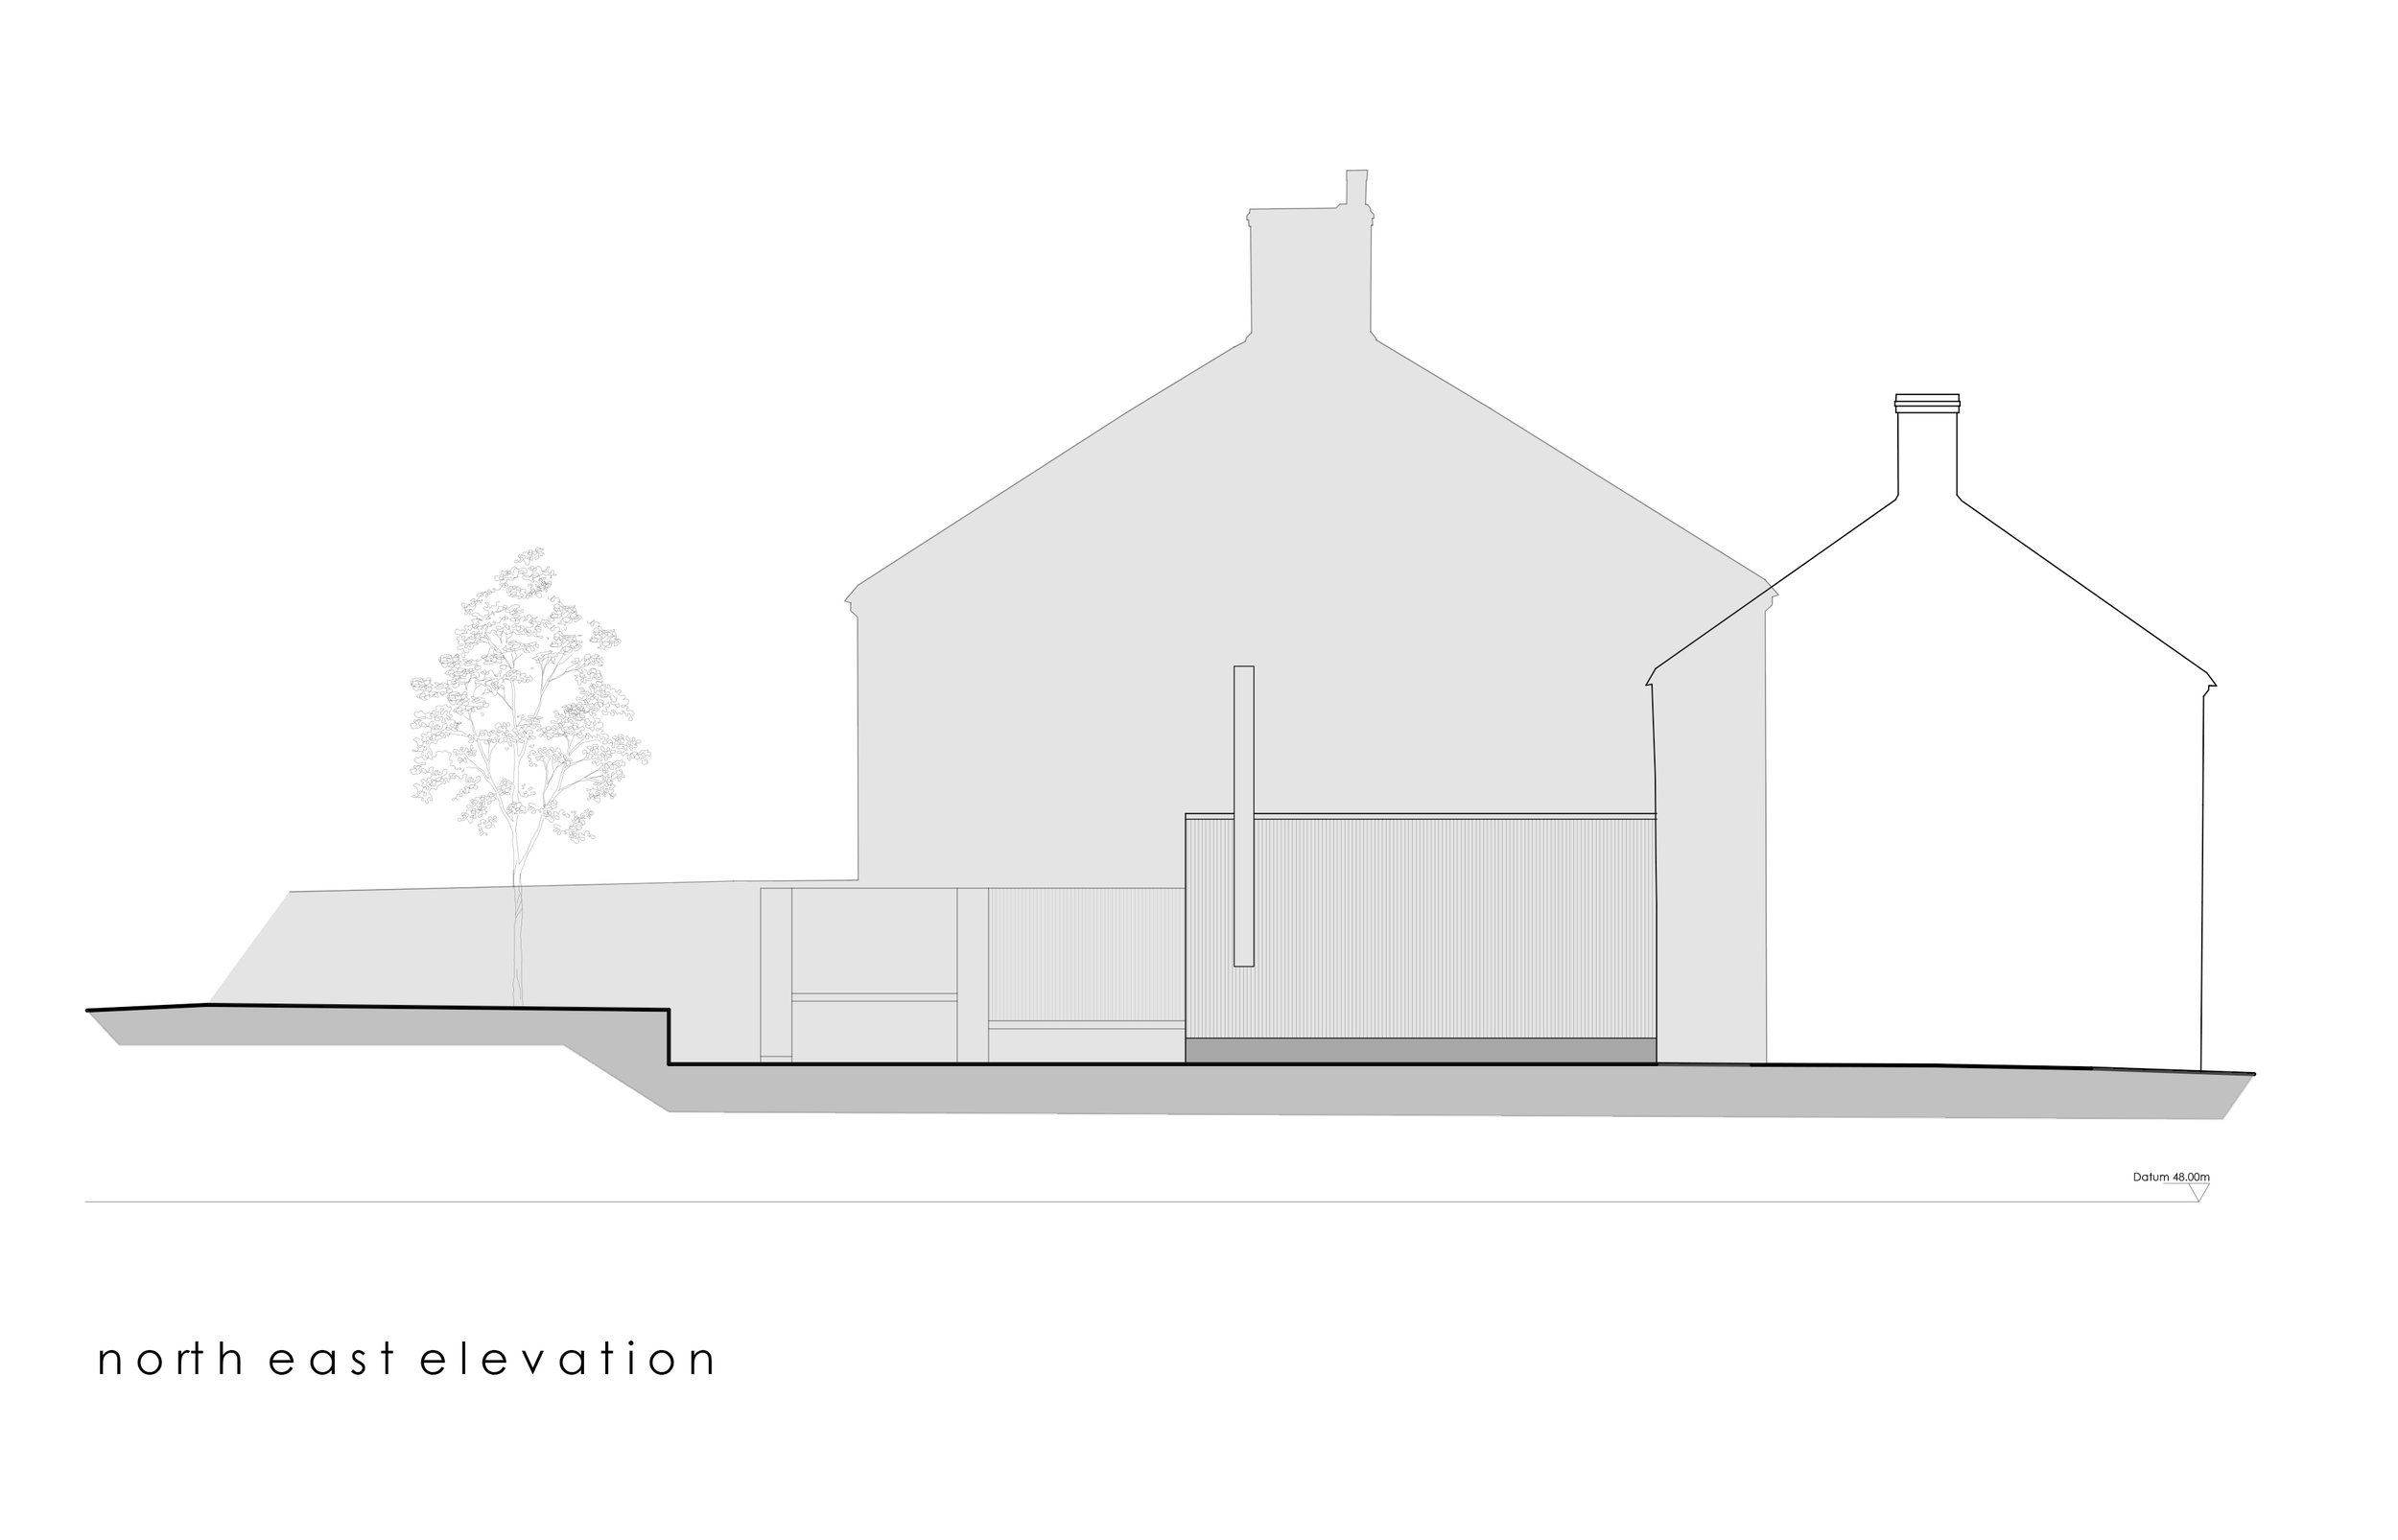 055-11A Proposed Elevations and Section 3.jpg